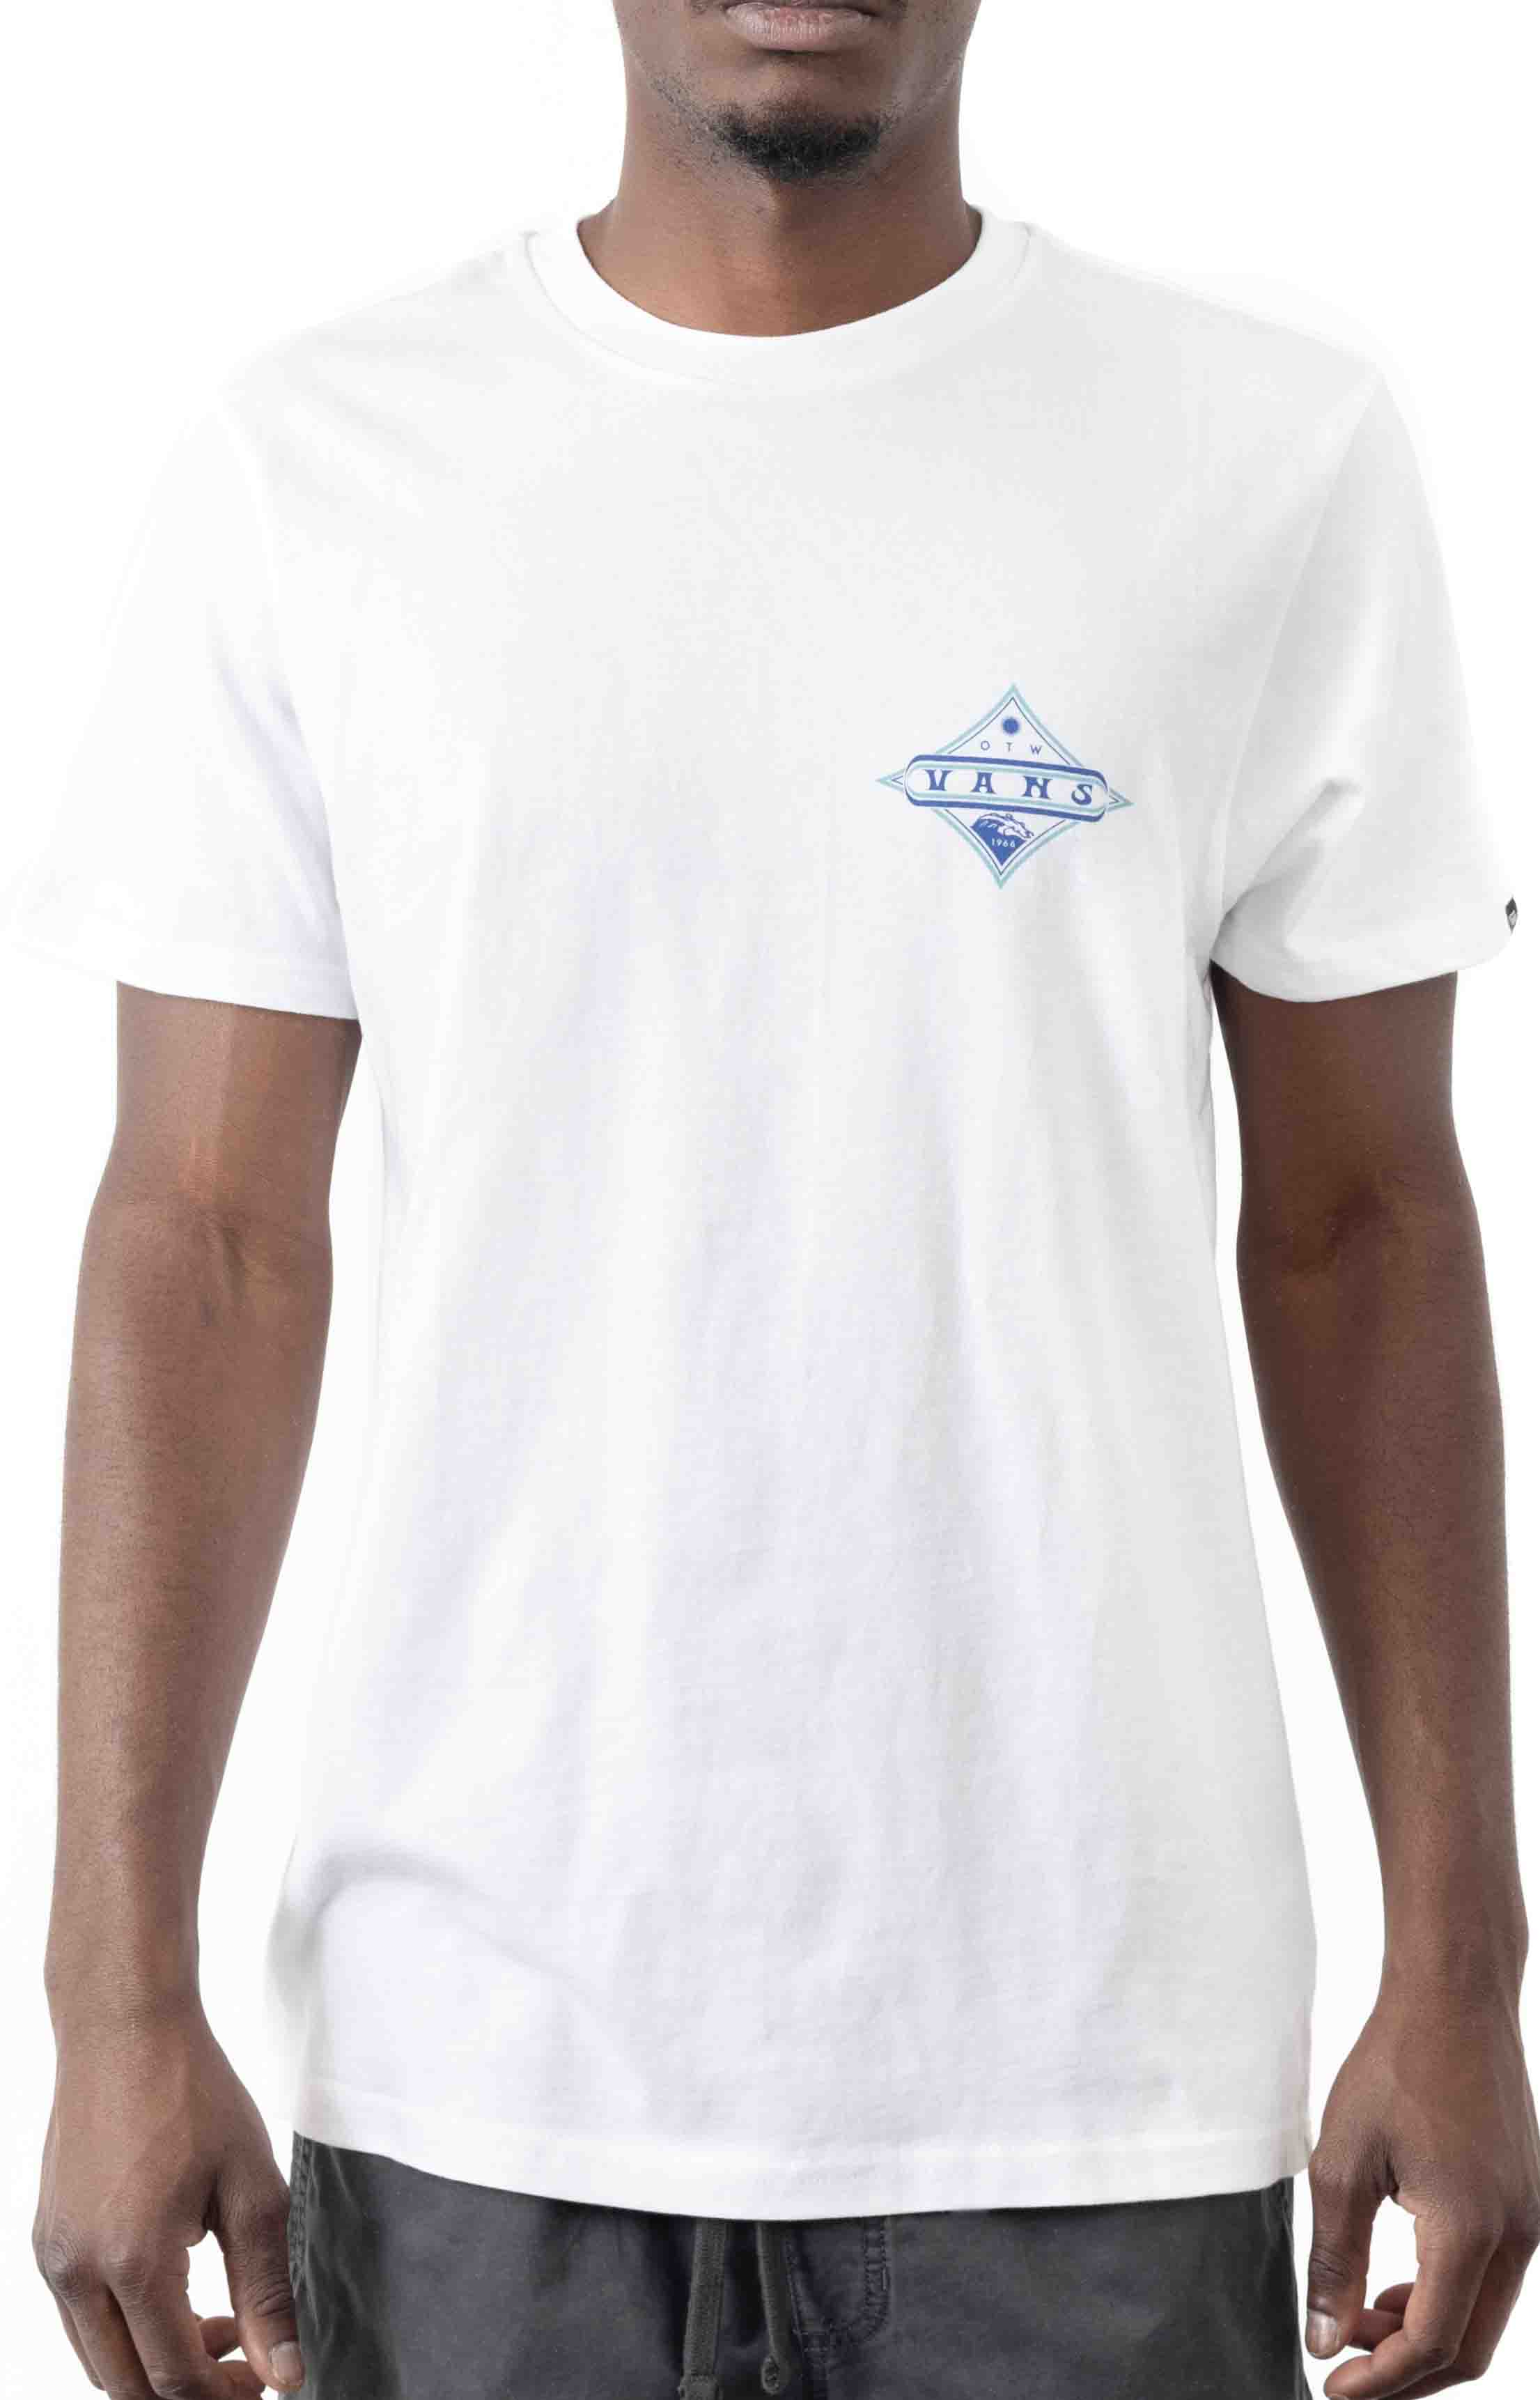 Vintage Pointed Shaper T-Shirt - White  2